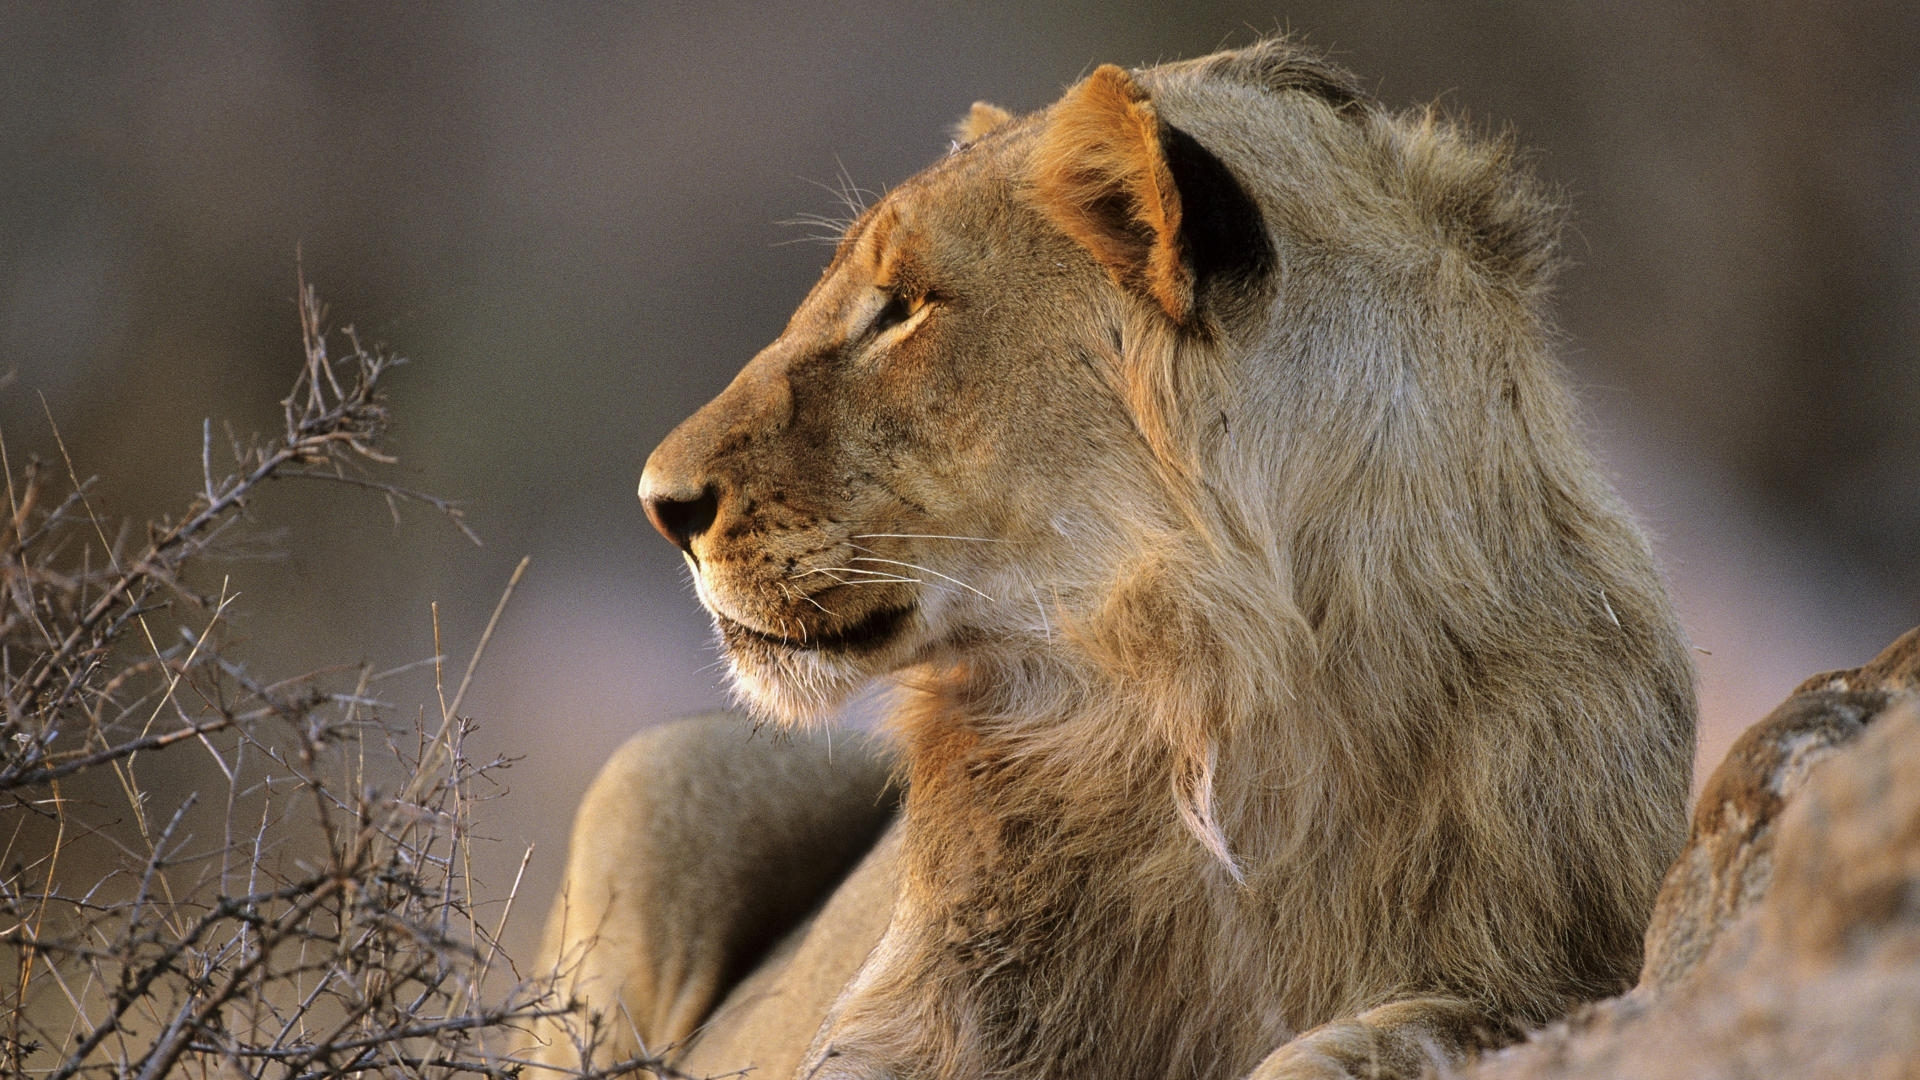 6471 download wallpaper Animals, Lions screensavers and pictures for free